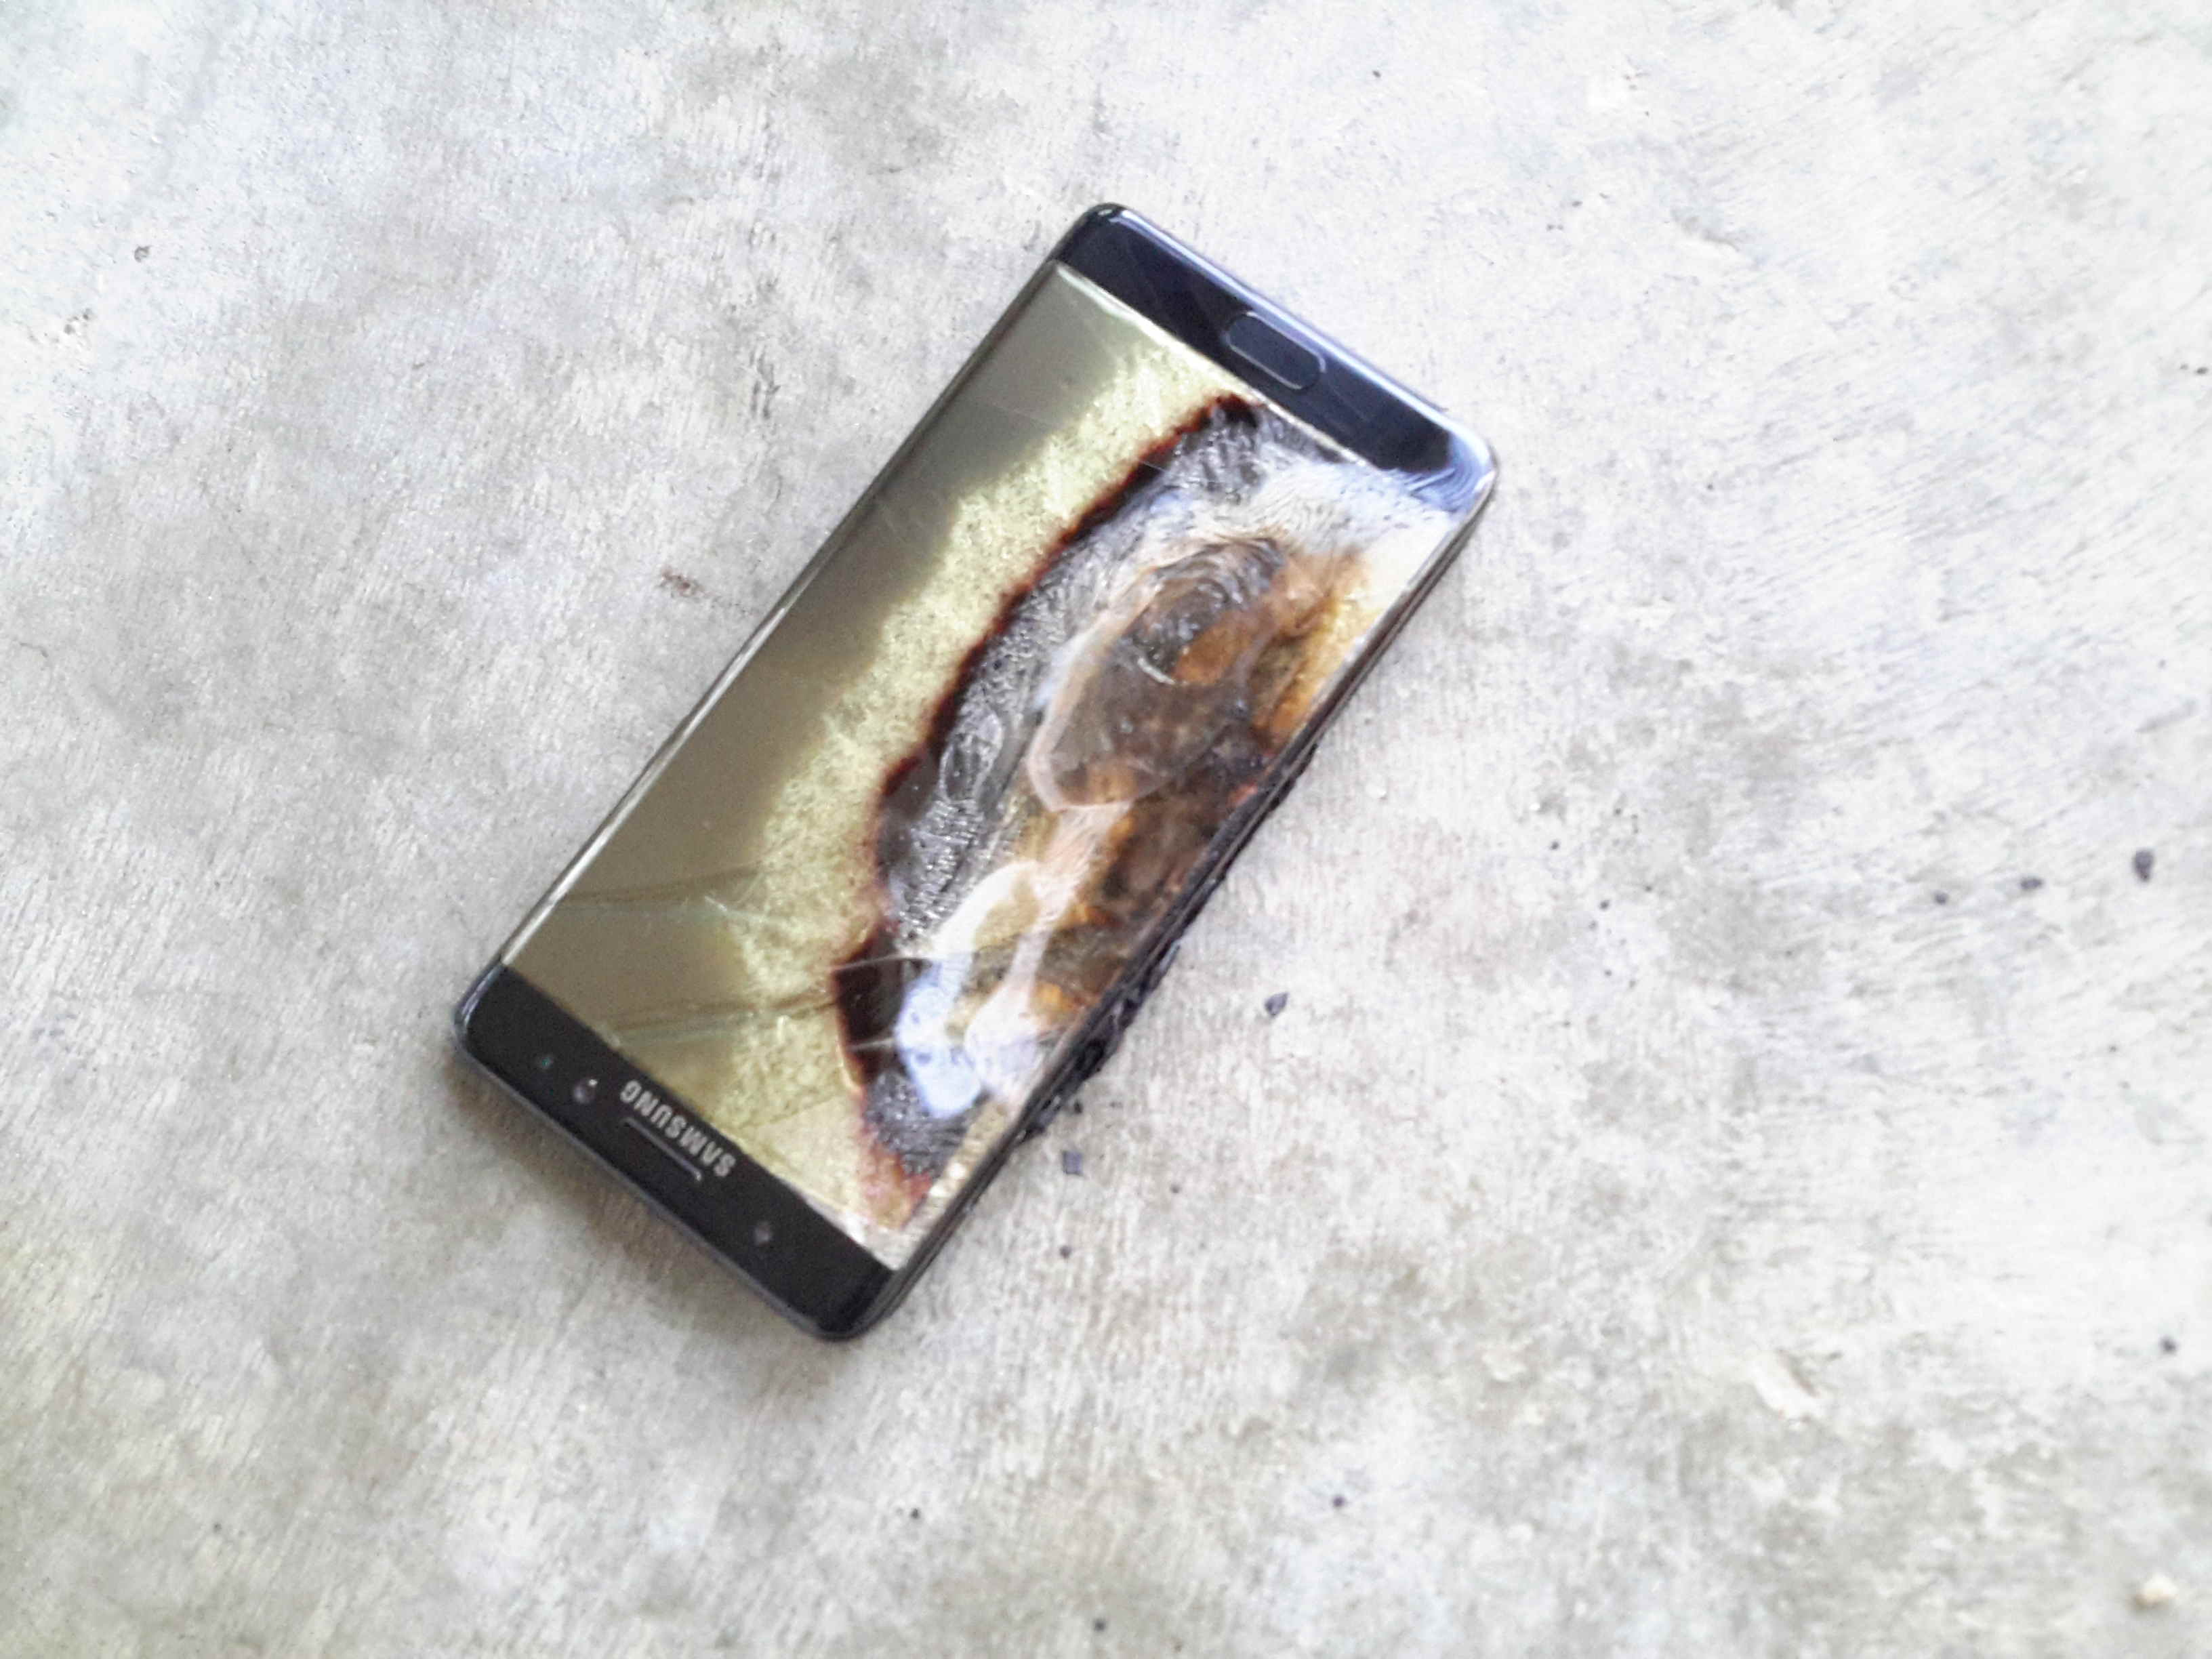 Another-Samsung-Galaxy-Note-7-battery-catches-fire (1)